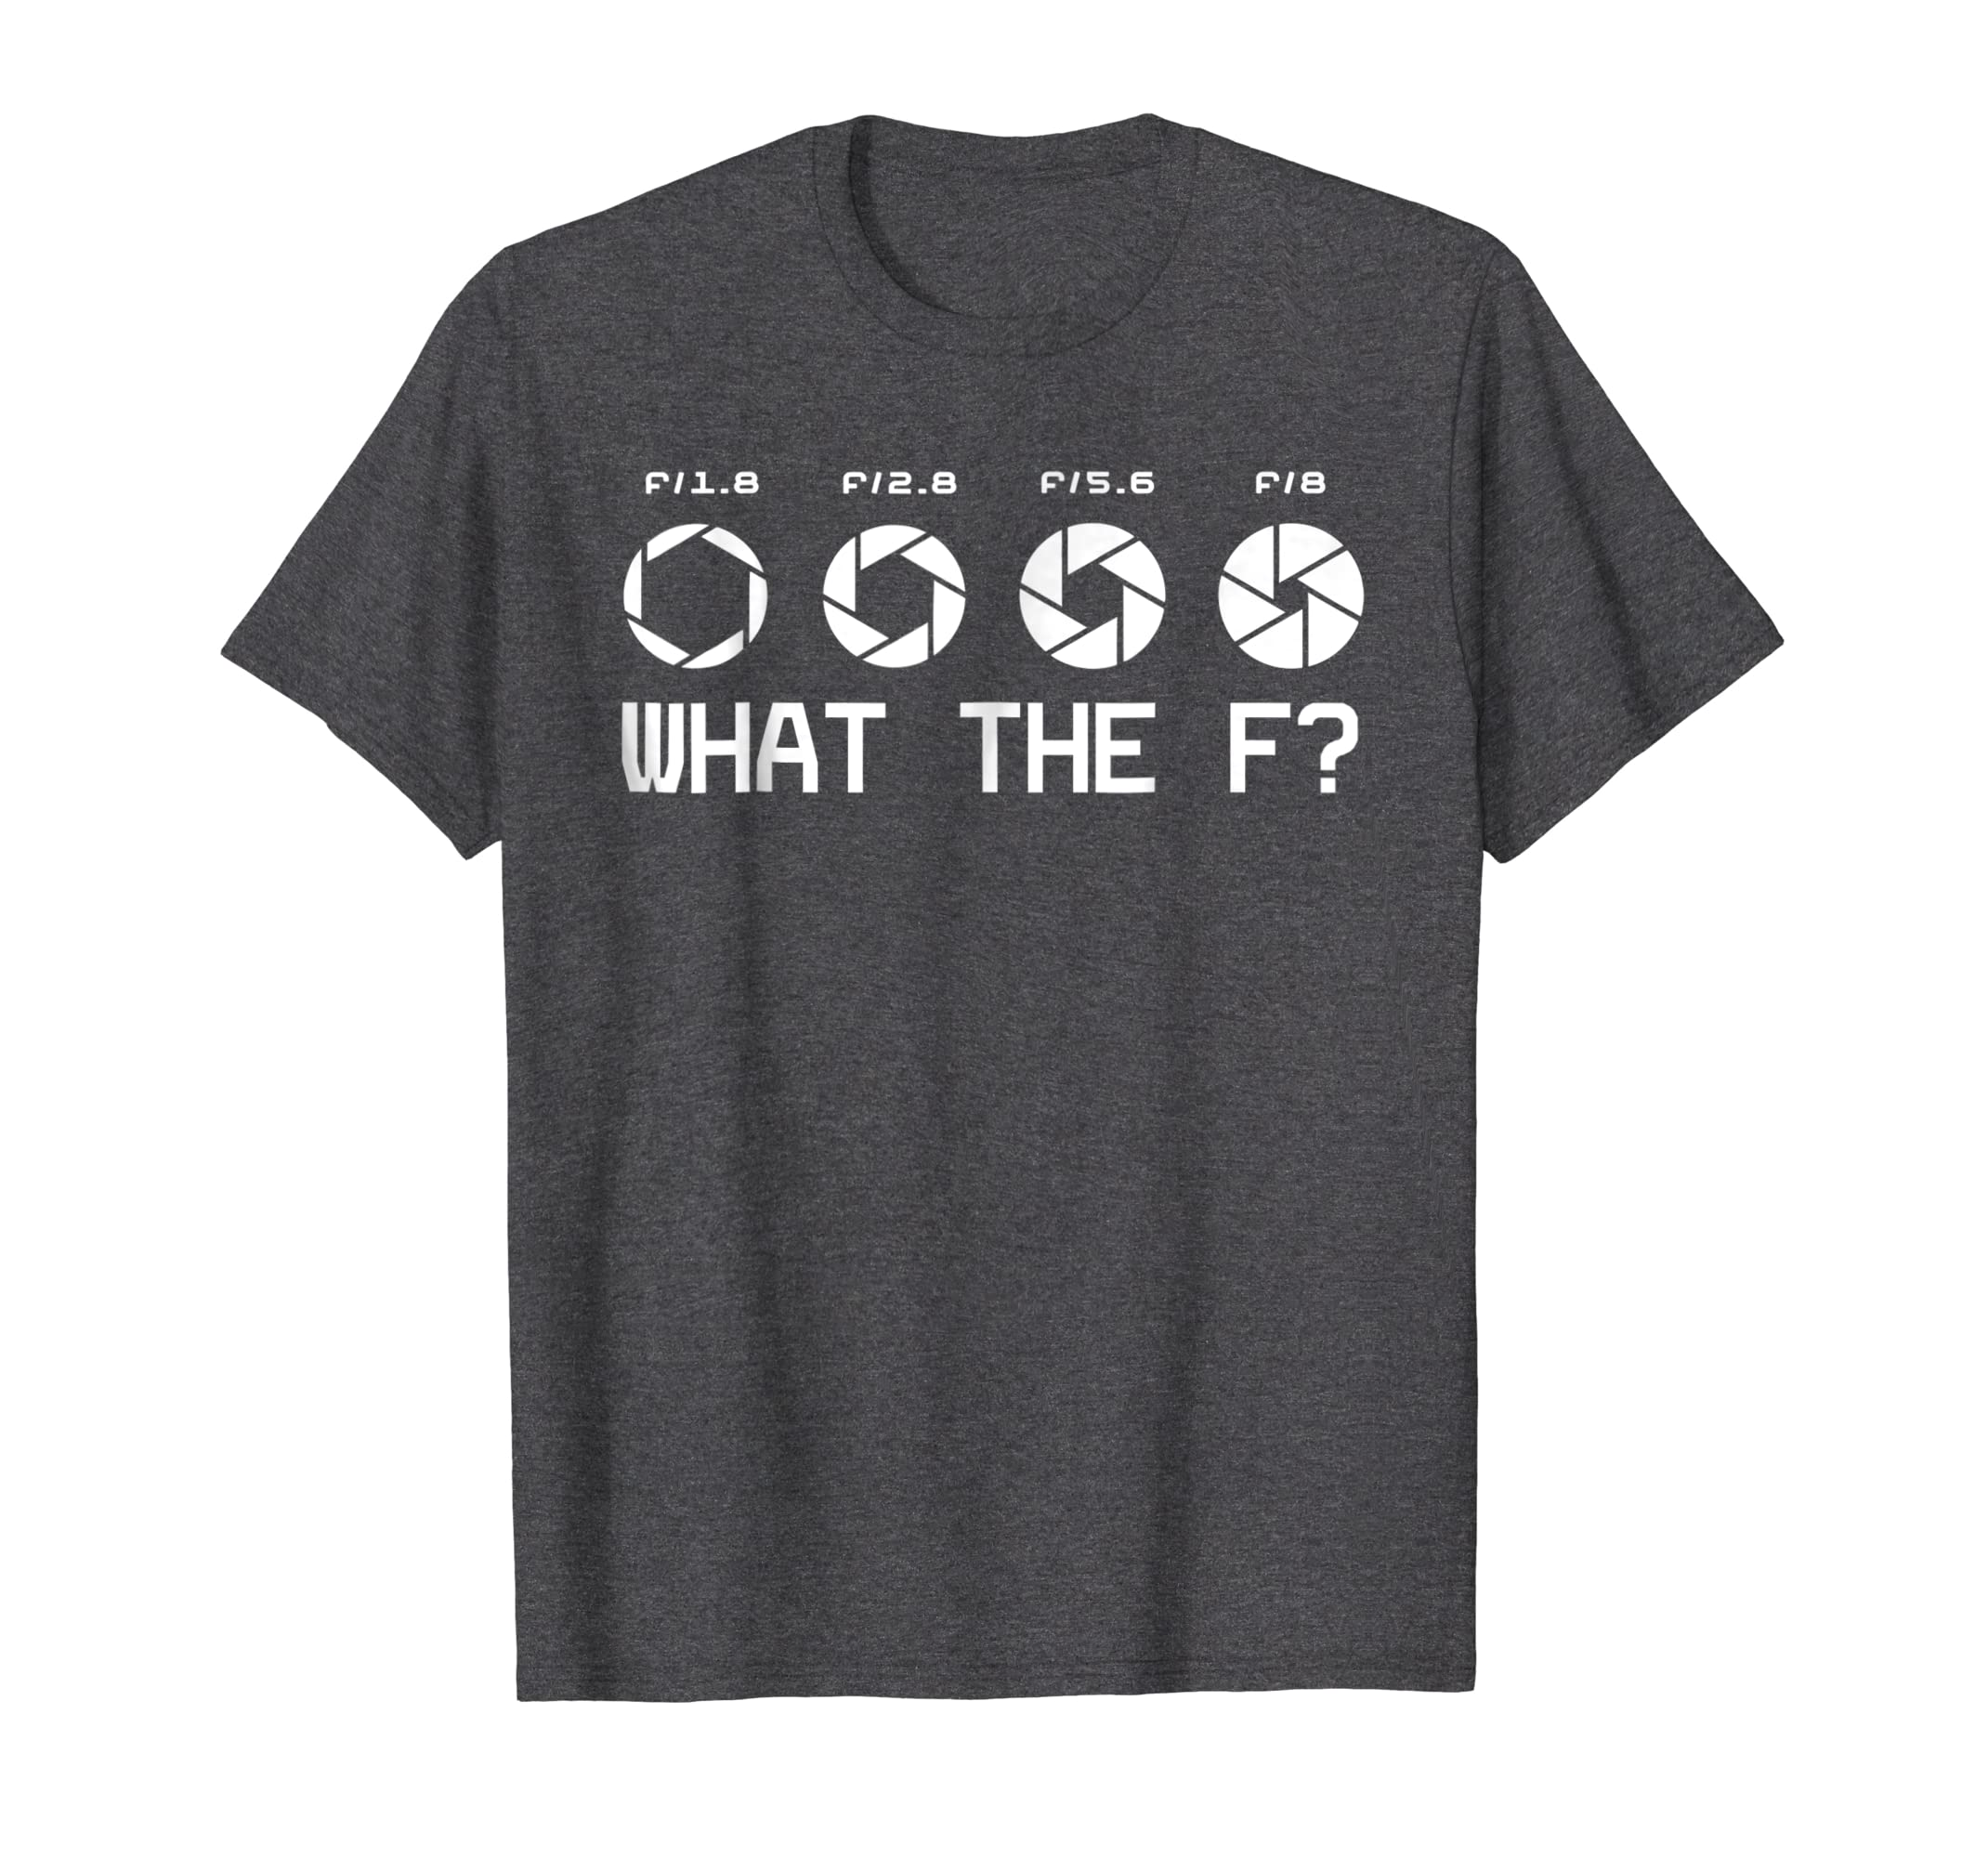 7db31ea0c Funny Photography Camera F Stop Lens What The F T Shirts-Colonhue ...